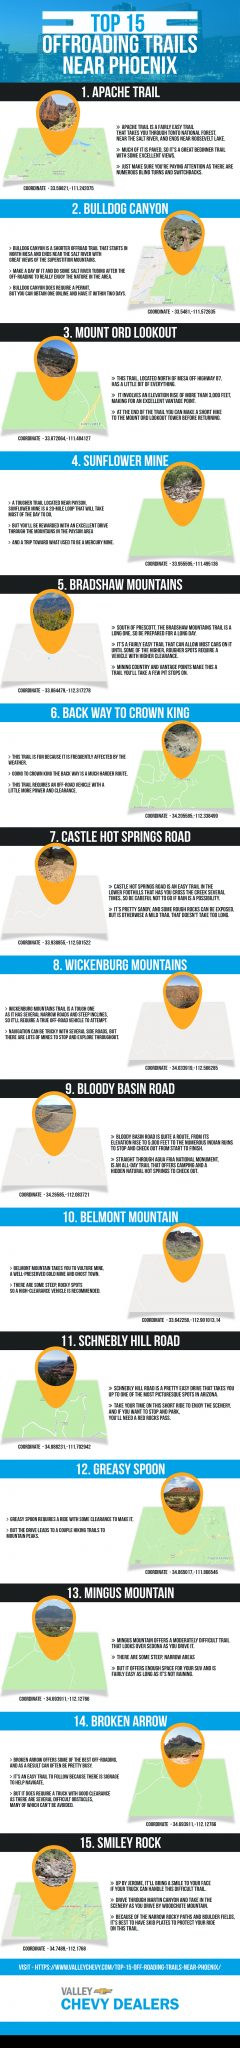 Valley Chevy Dealers - 15 Best Off-Road Trails Near Phoenix Infographic